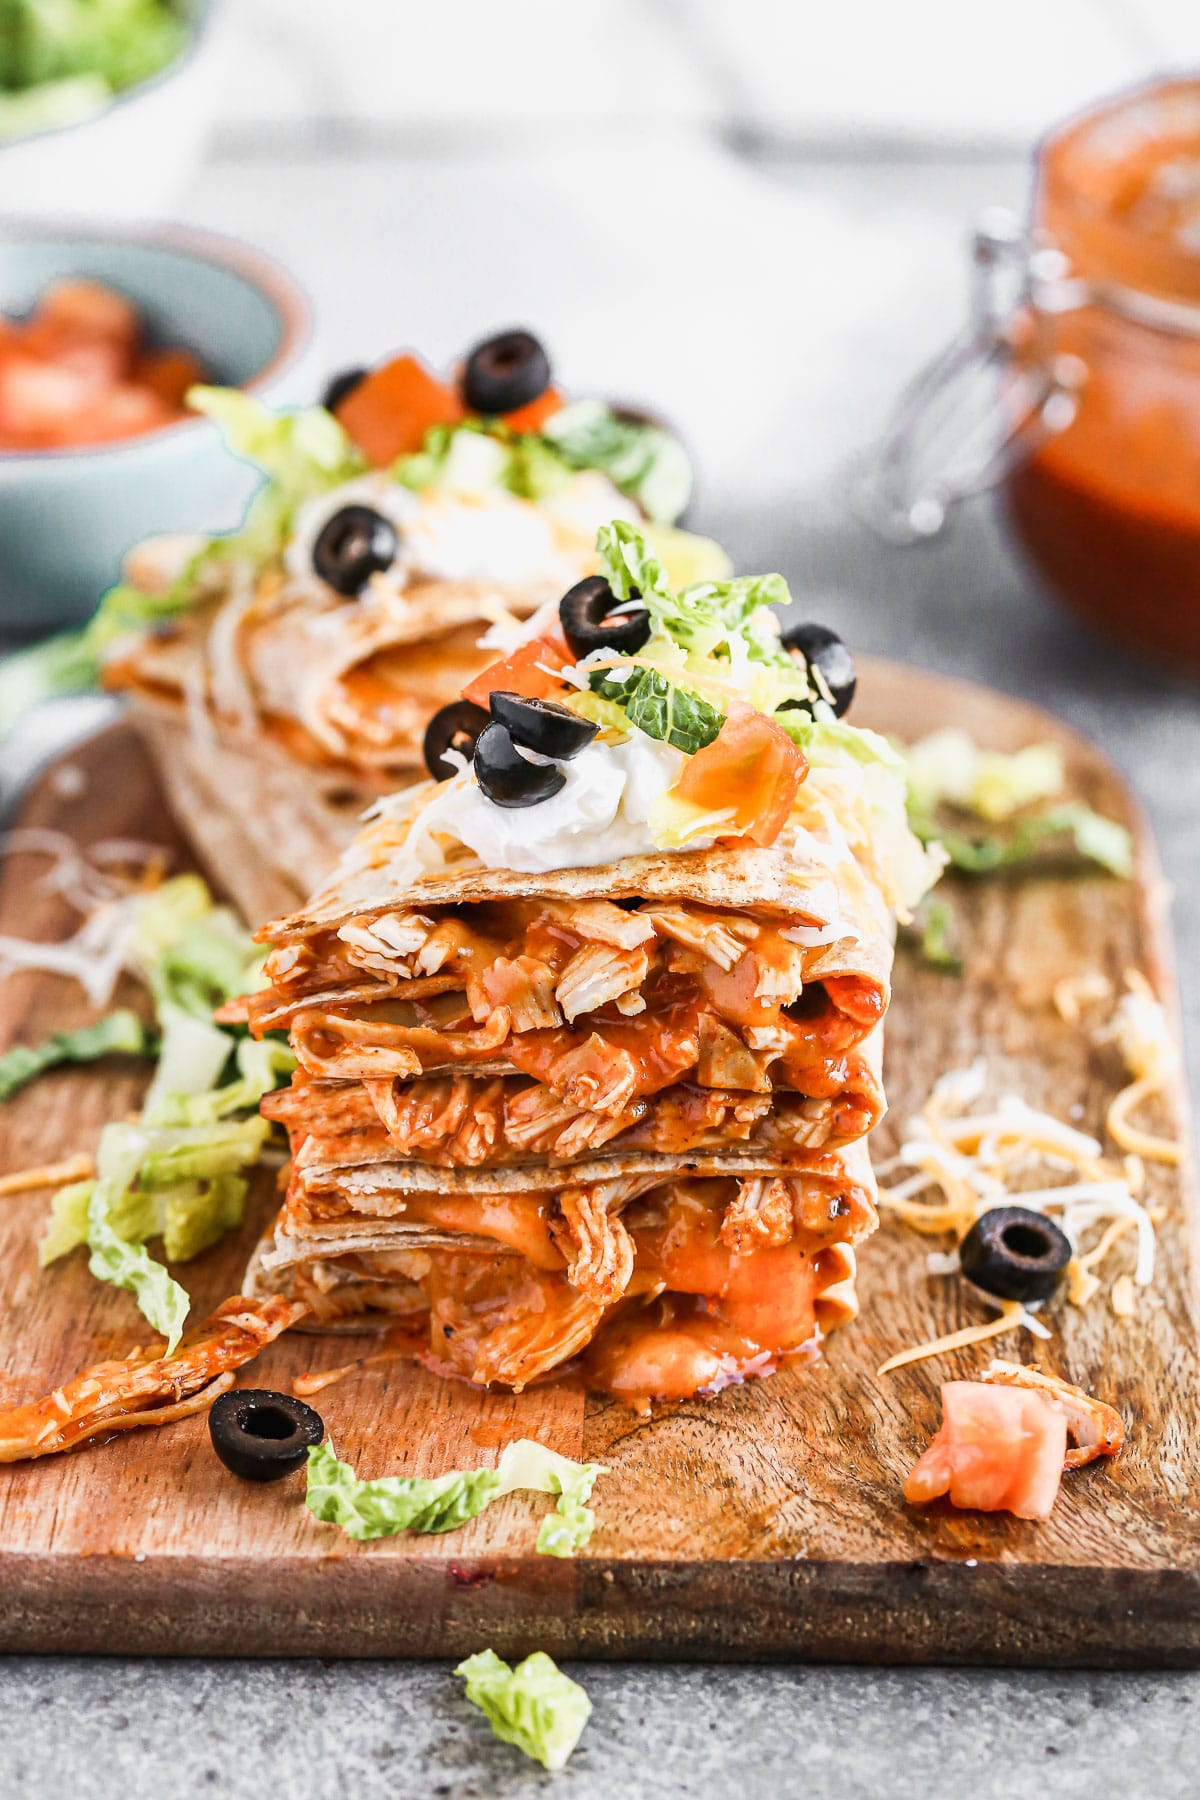 Chickenenchilada on the inside, taco on the outside is what makes ourChicken Enchilada Taco Quesadillastheperfecthandheld hybrid of three classic tex-mex dishes. Each whole-wheat tortilla is filled with saucy shredded chicken (made with our epic homemade enchilada sauce) and cheese, pan-fried and then smothered with all your favorite taco fixings!